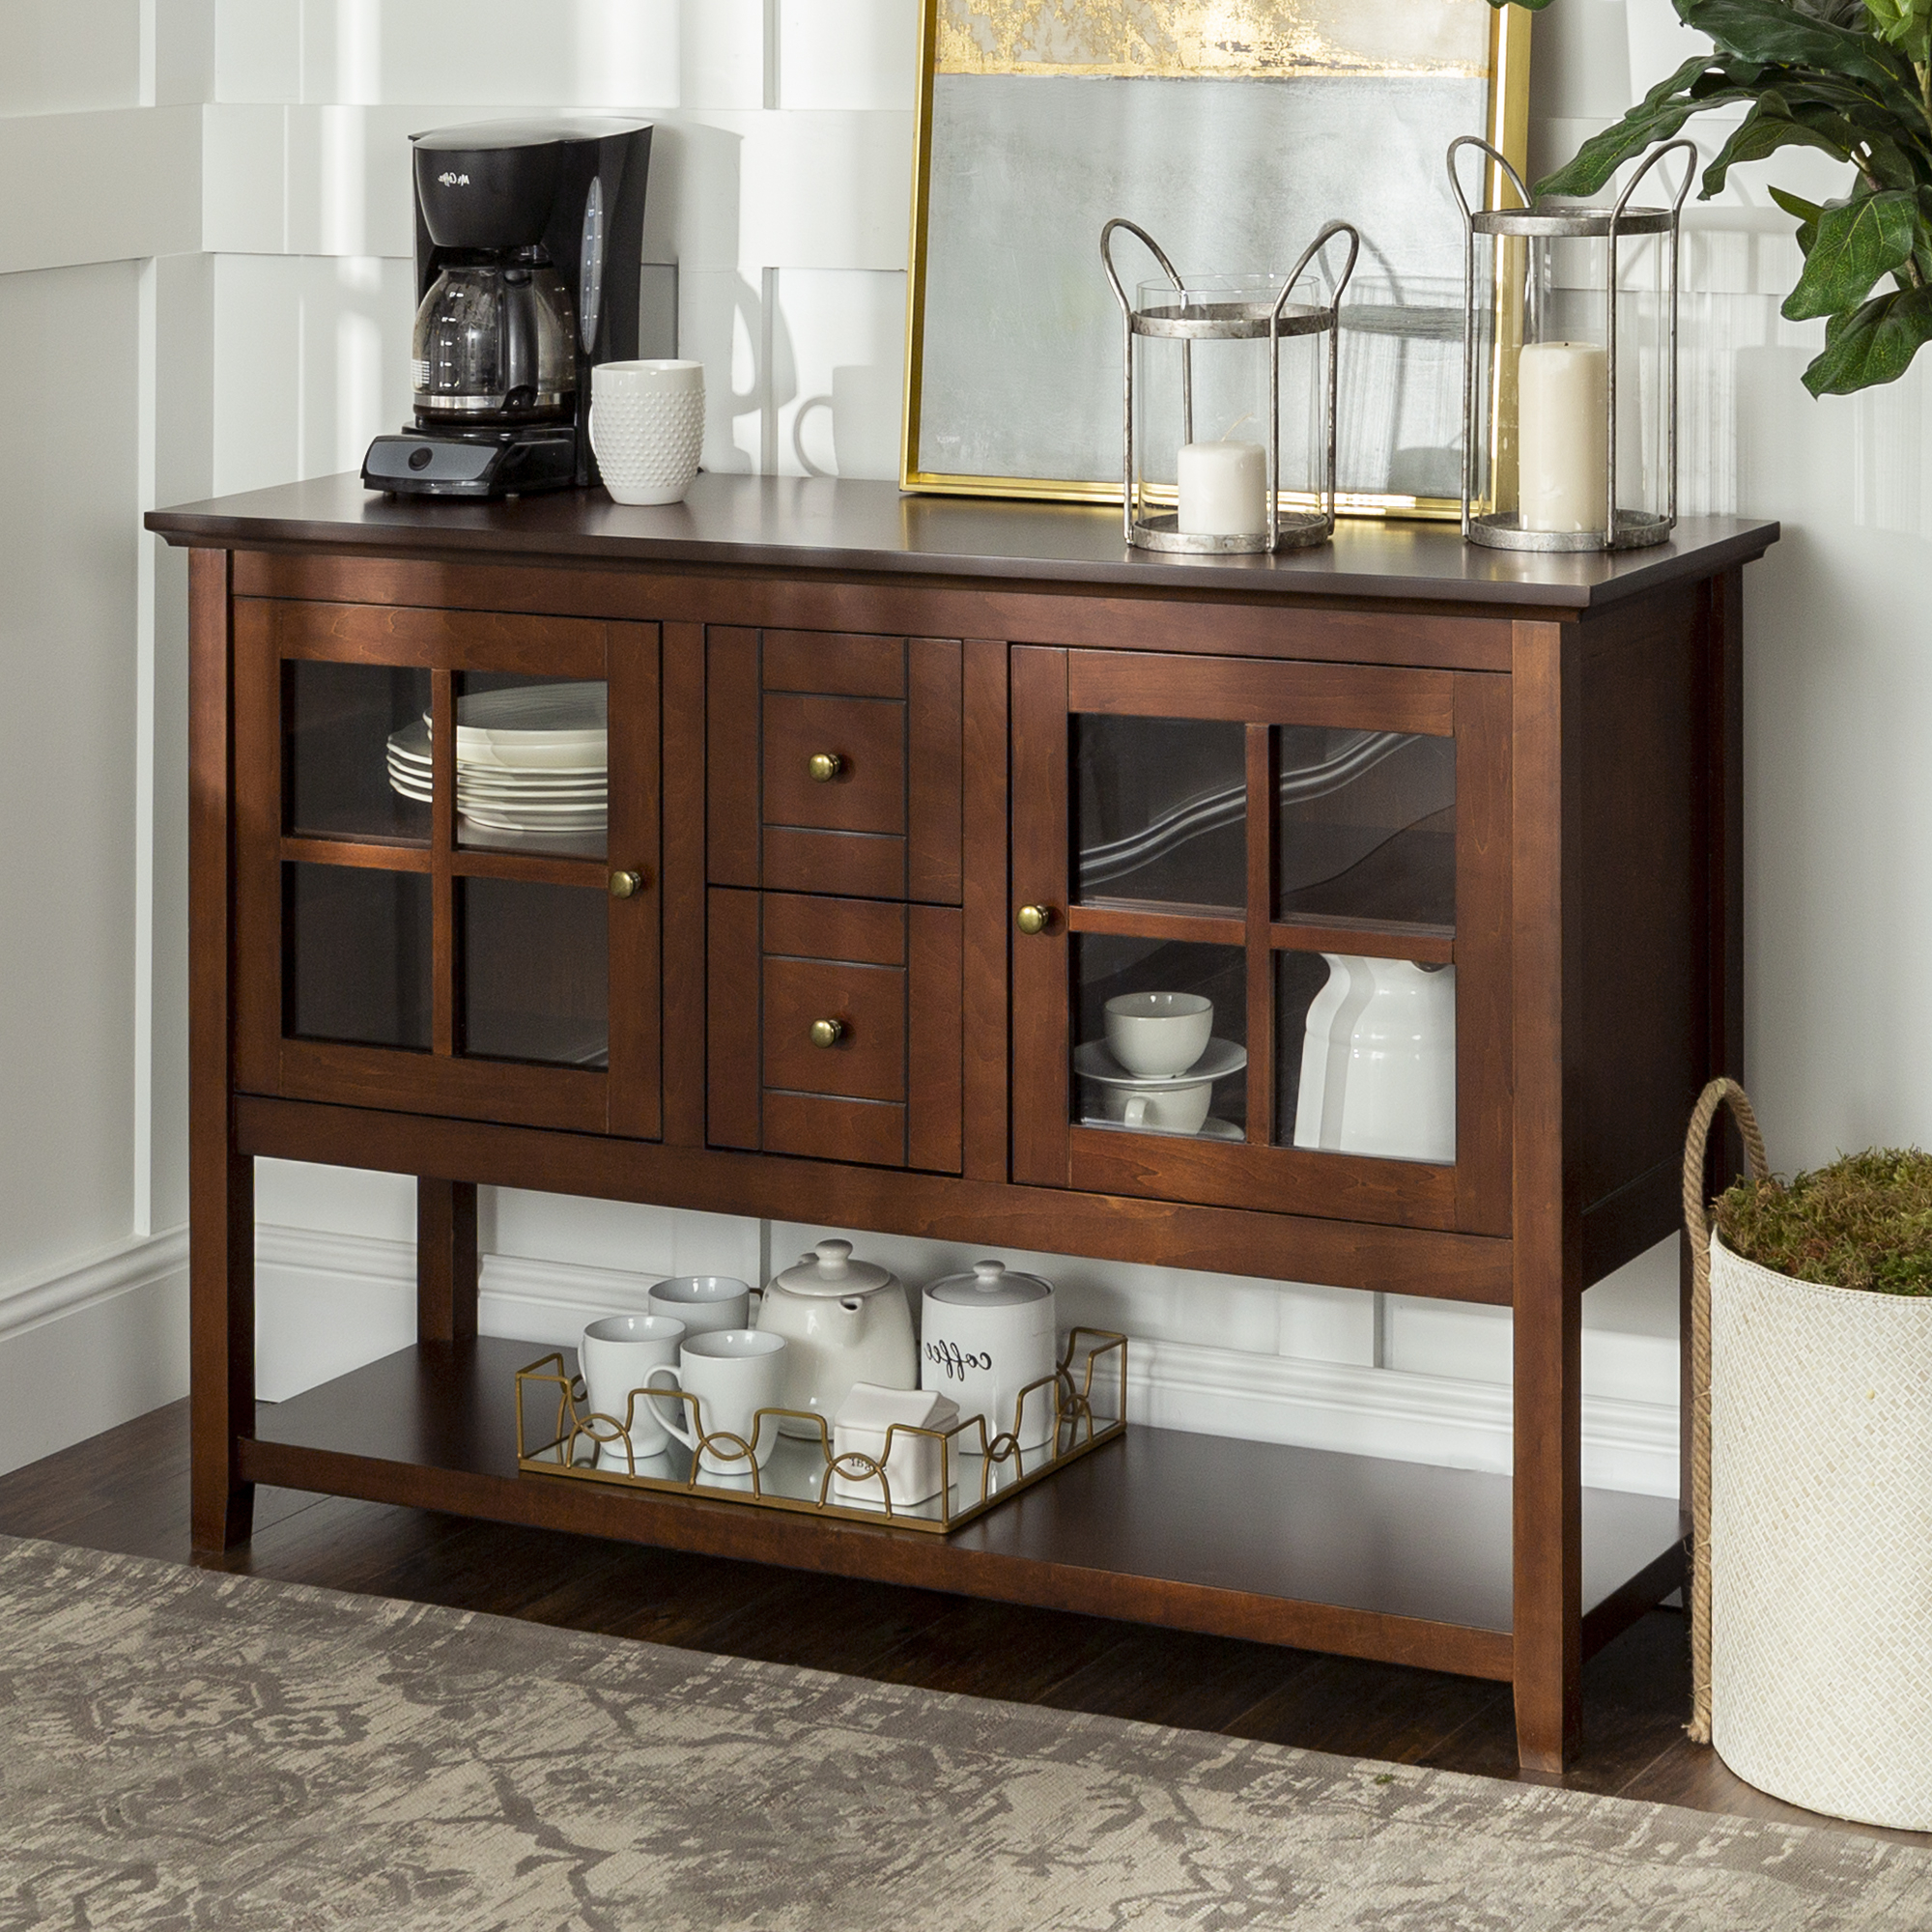 """52"""" Wood Console Table Buffet Tv Stand For Tv's Up To 55 With Regard To 2017 Spellman Tv Stands For Tvs Up To 55"""" (View 21 of 25)"""